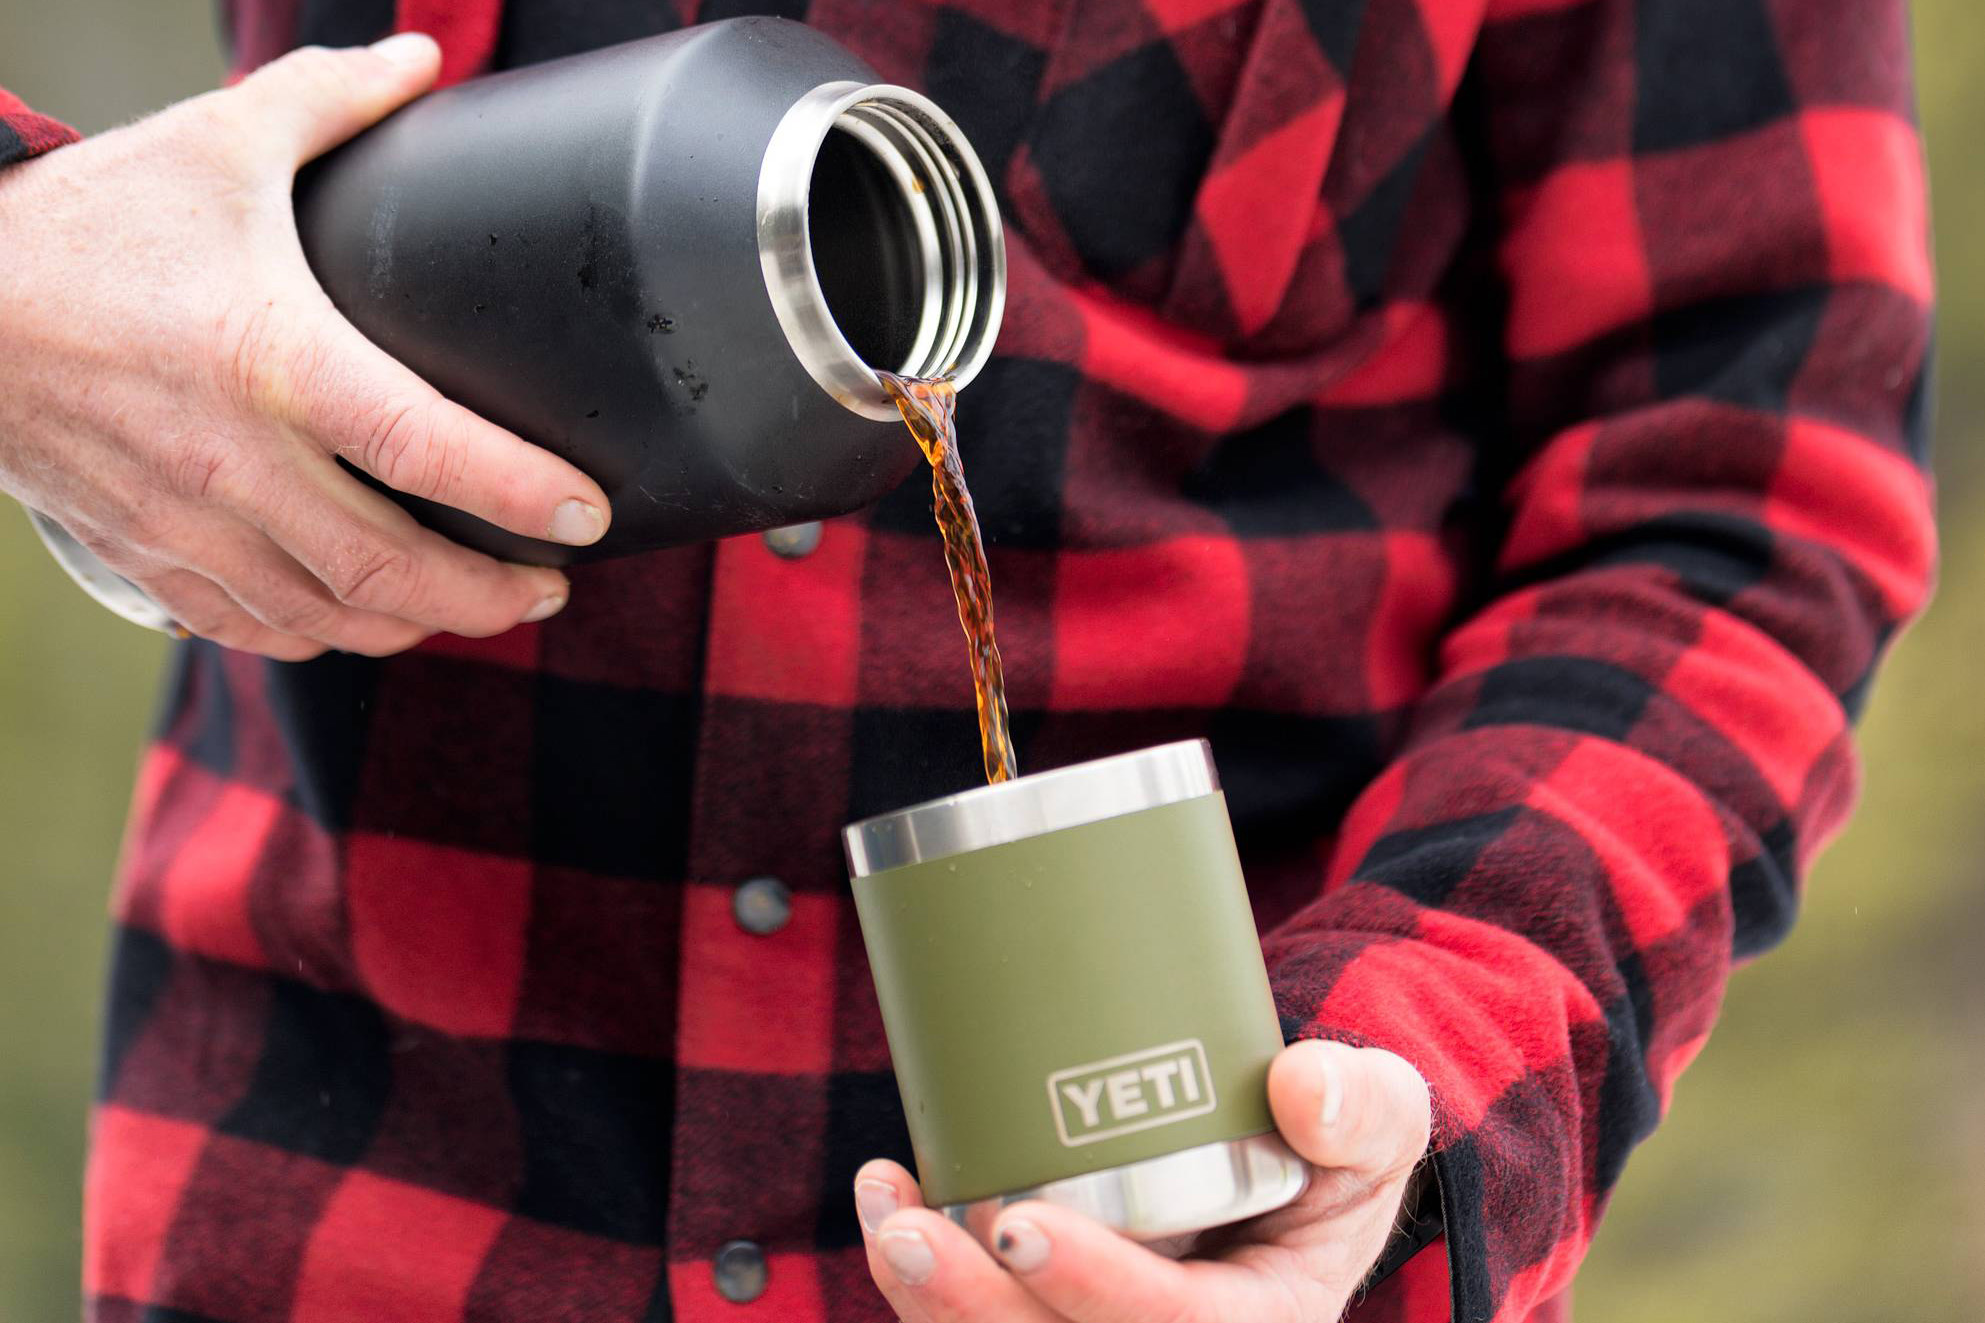 Yeti Cyber Monday Sale >> Best Cyber Monday Outdoor Gear Deals 2018 Gearjunkie